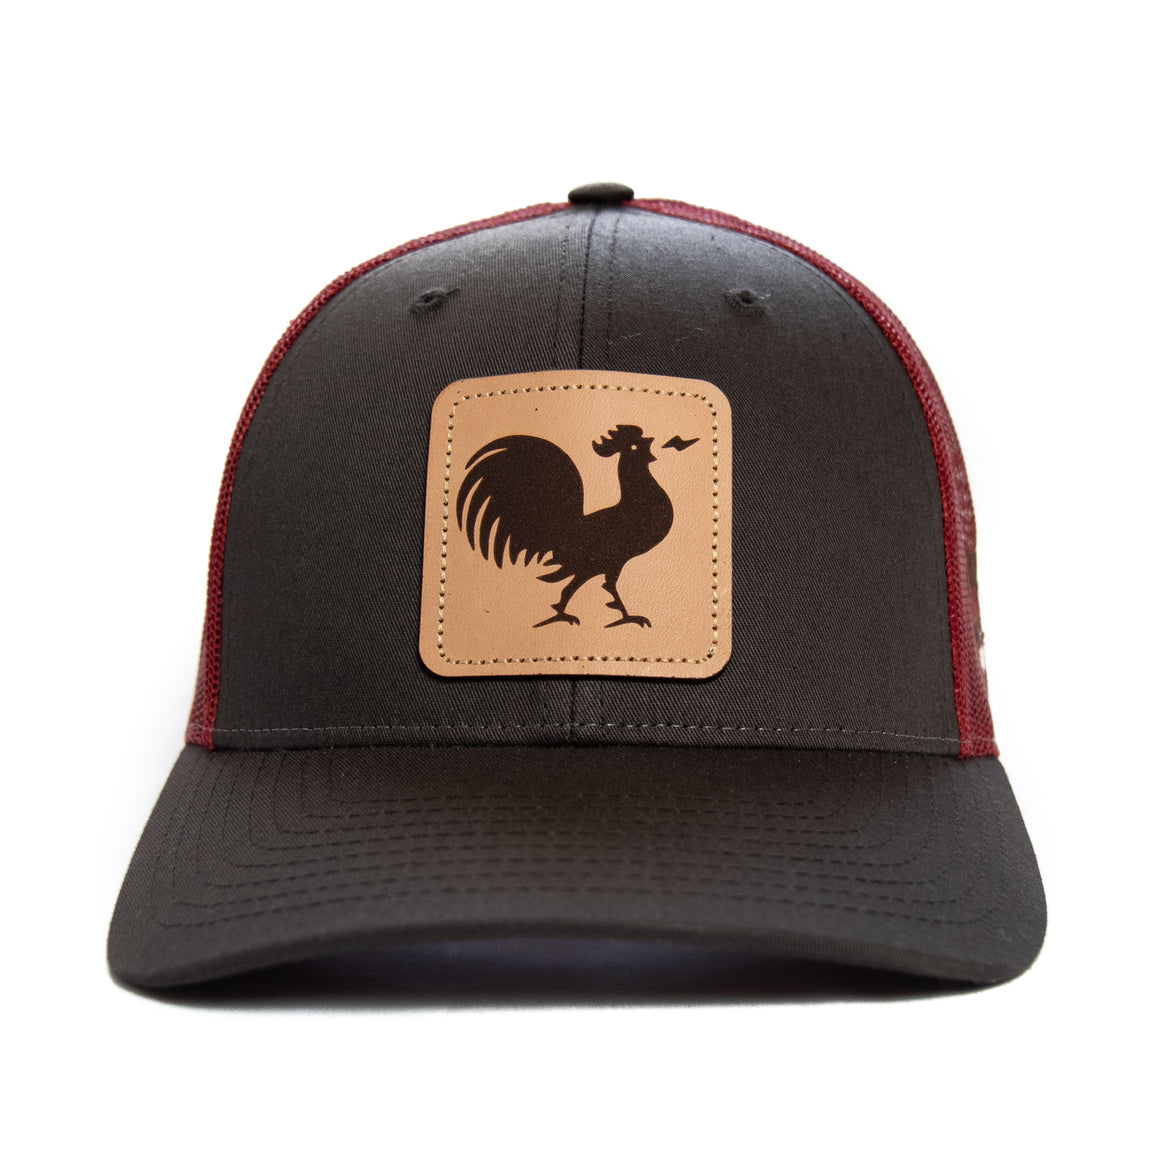 Crowing Rooster Trucker Two